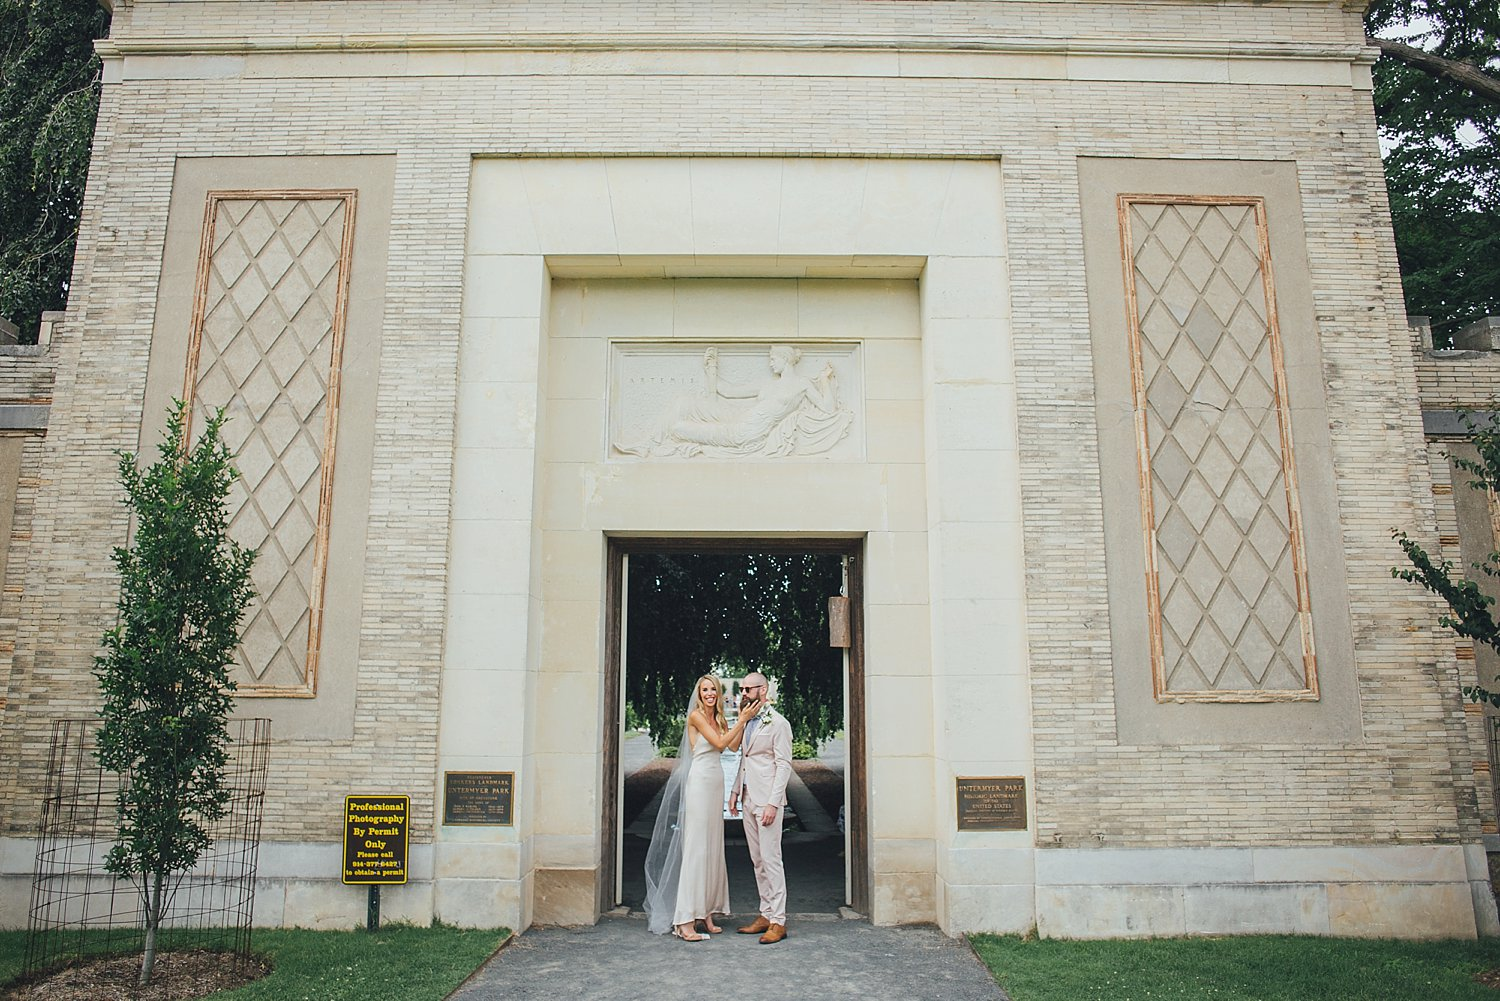 nyc-wedding-photography-nj-tri-state-cinematography-intothestory-by-moo-jae_0334.jpg